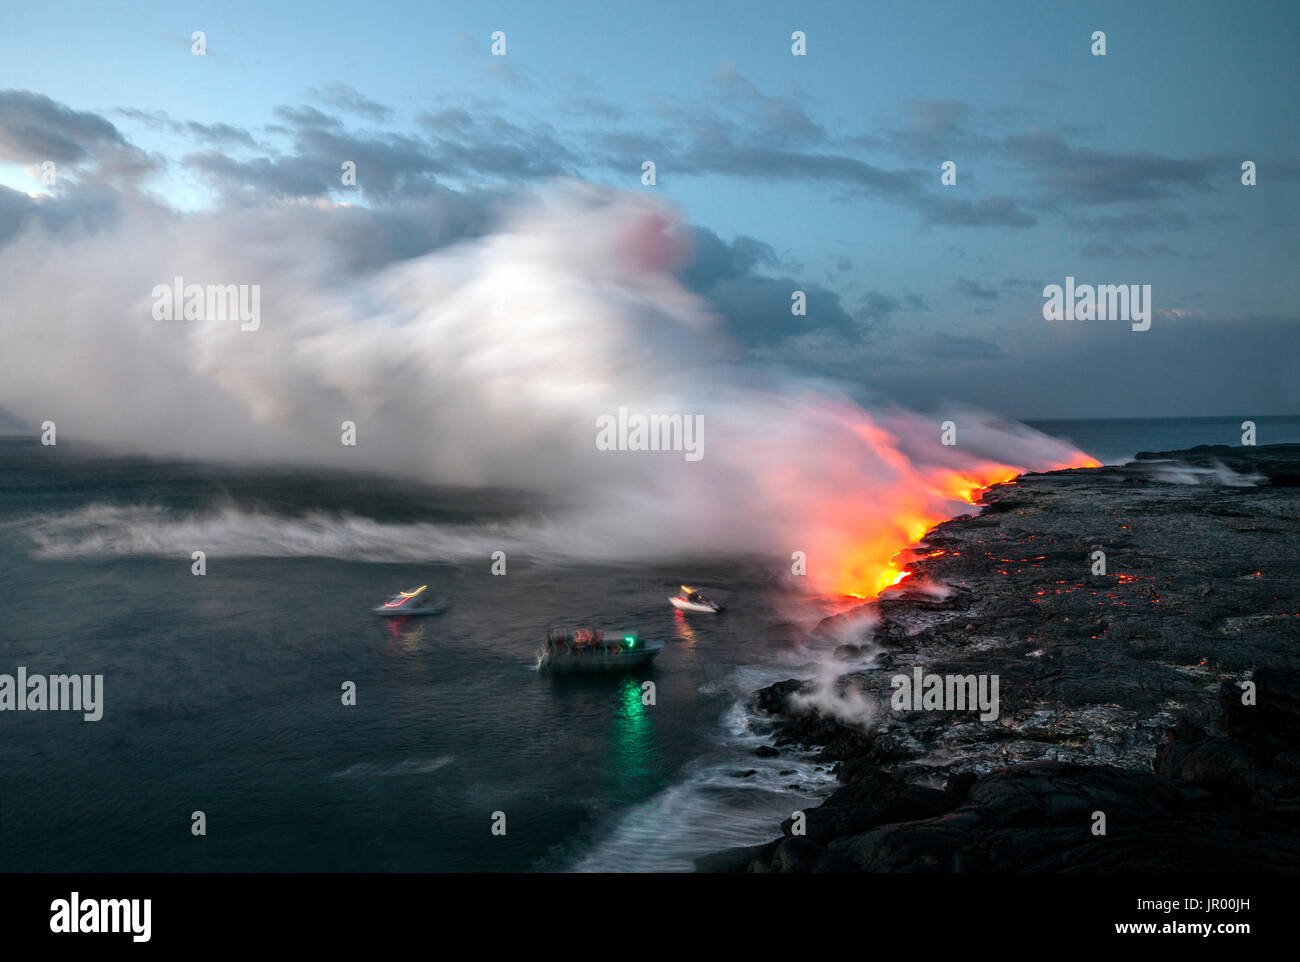 HI00336-00...HAWAI'I -Boats approaching lava flowing into the Pacific Ocean from the East Riff Zoneof the Kilauea Volcano on the Island of Hawai'i. - Stock Image